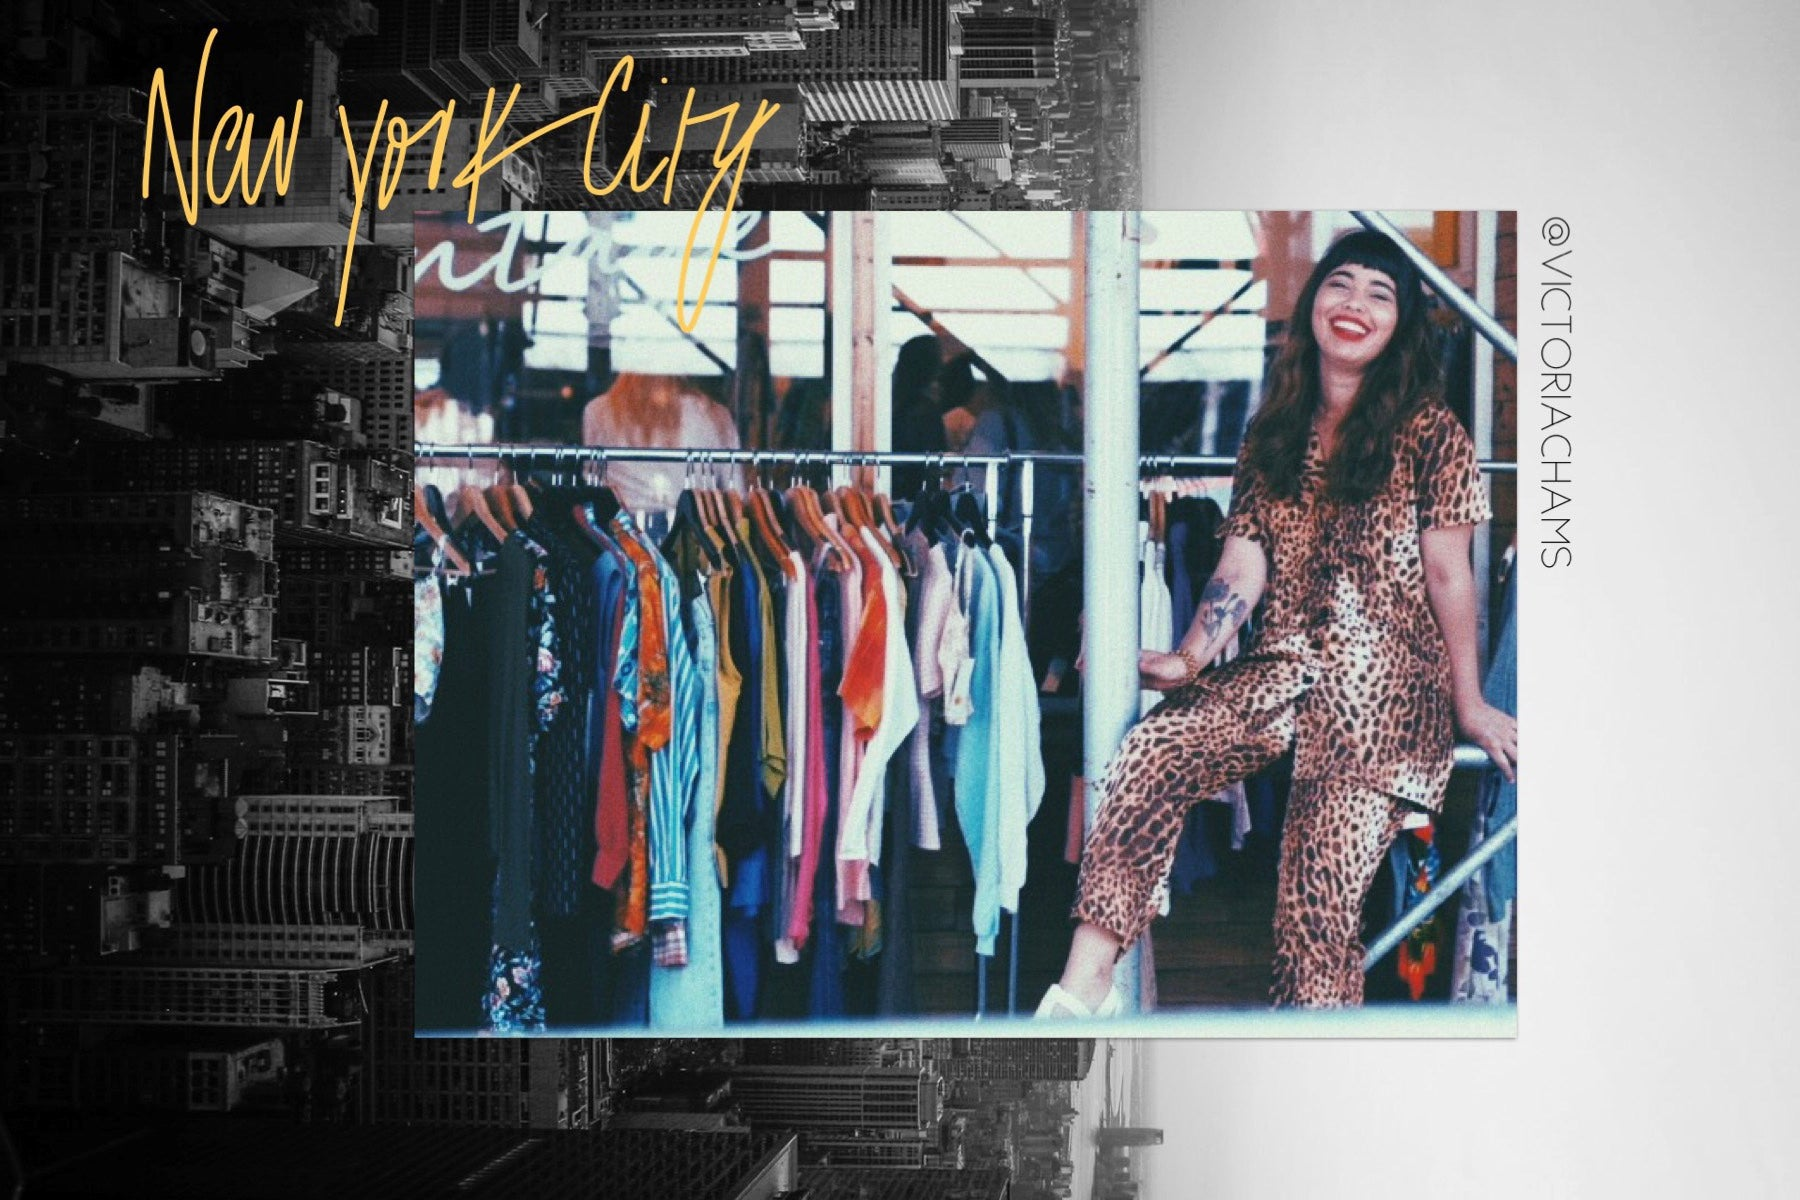 COOL-HUNT: Conoce a Victoria Chams, nuestra shopper en New York